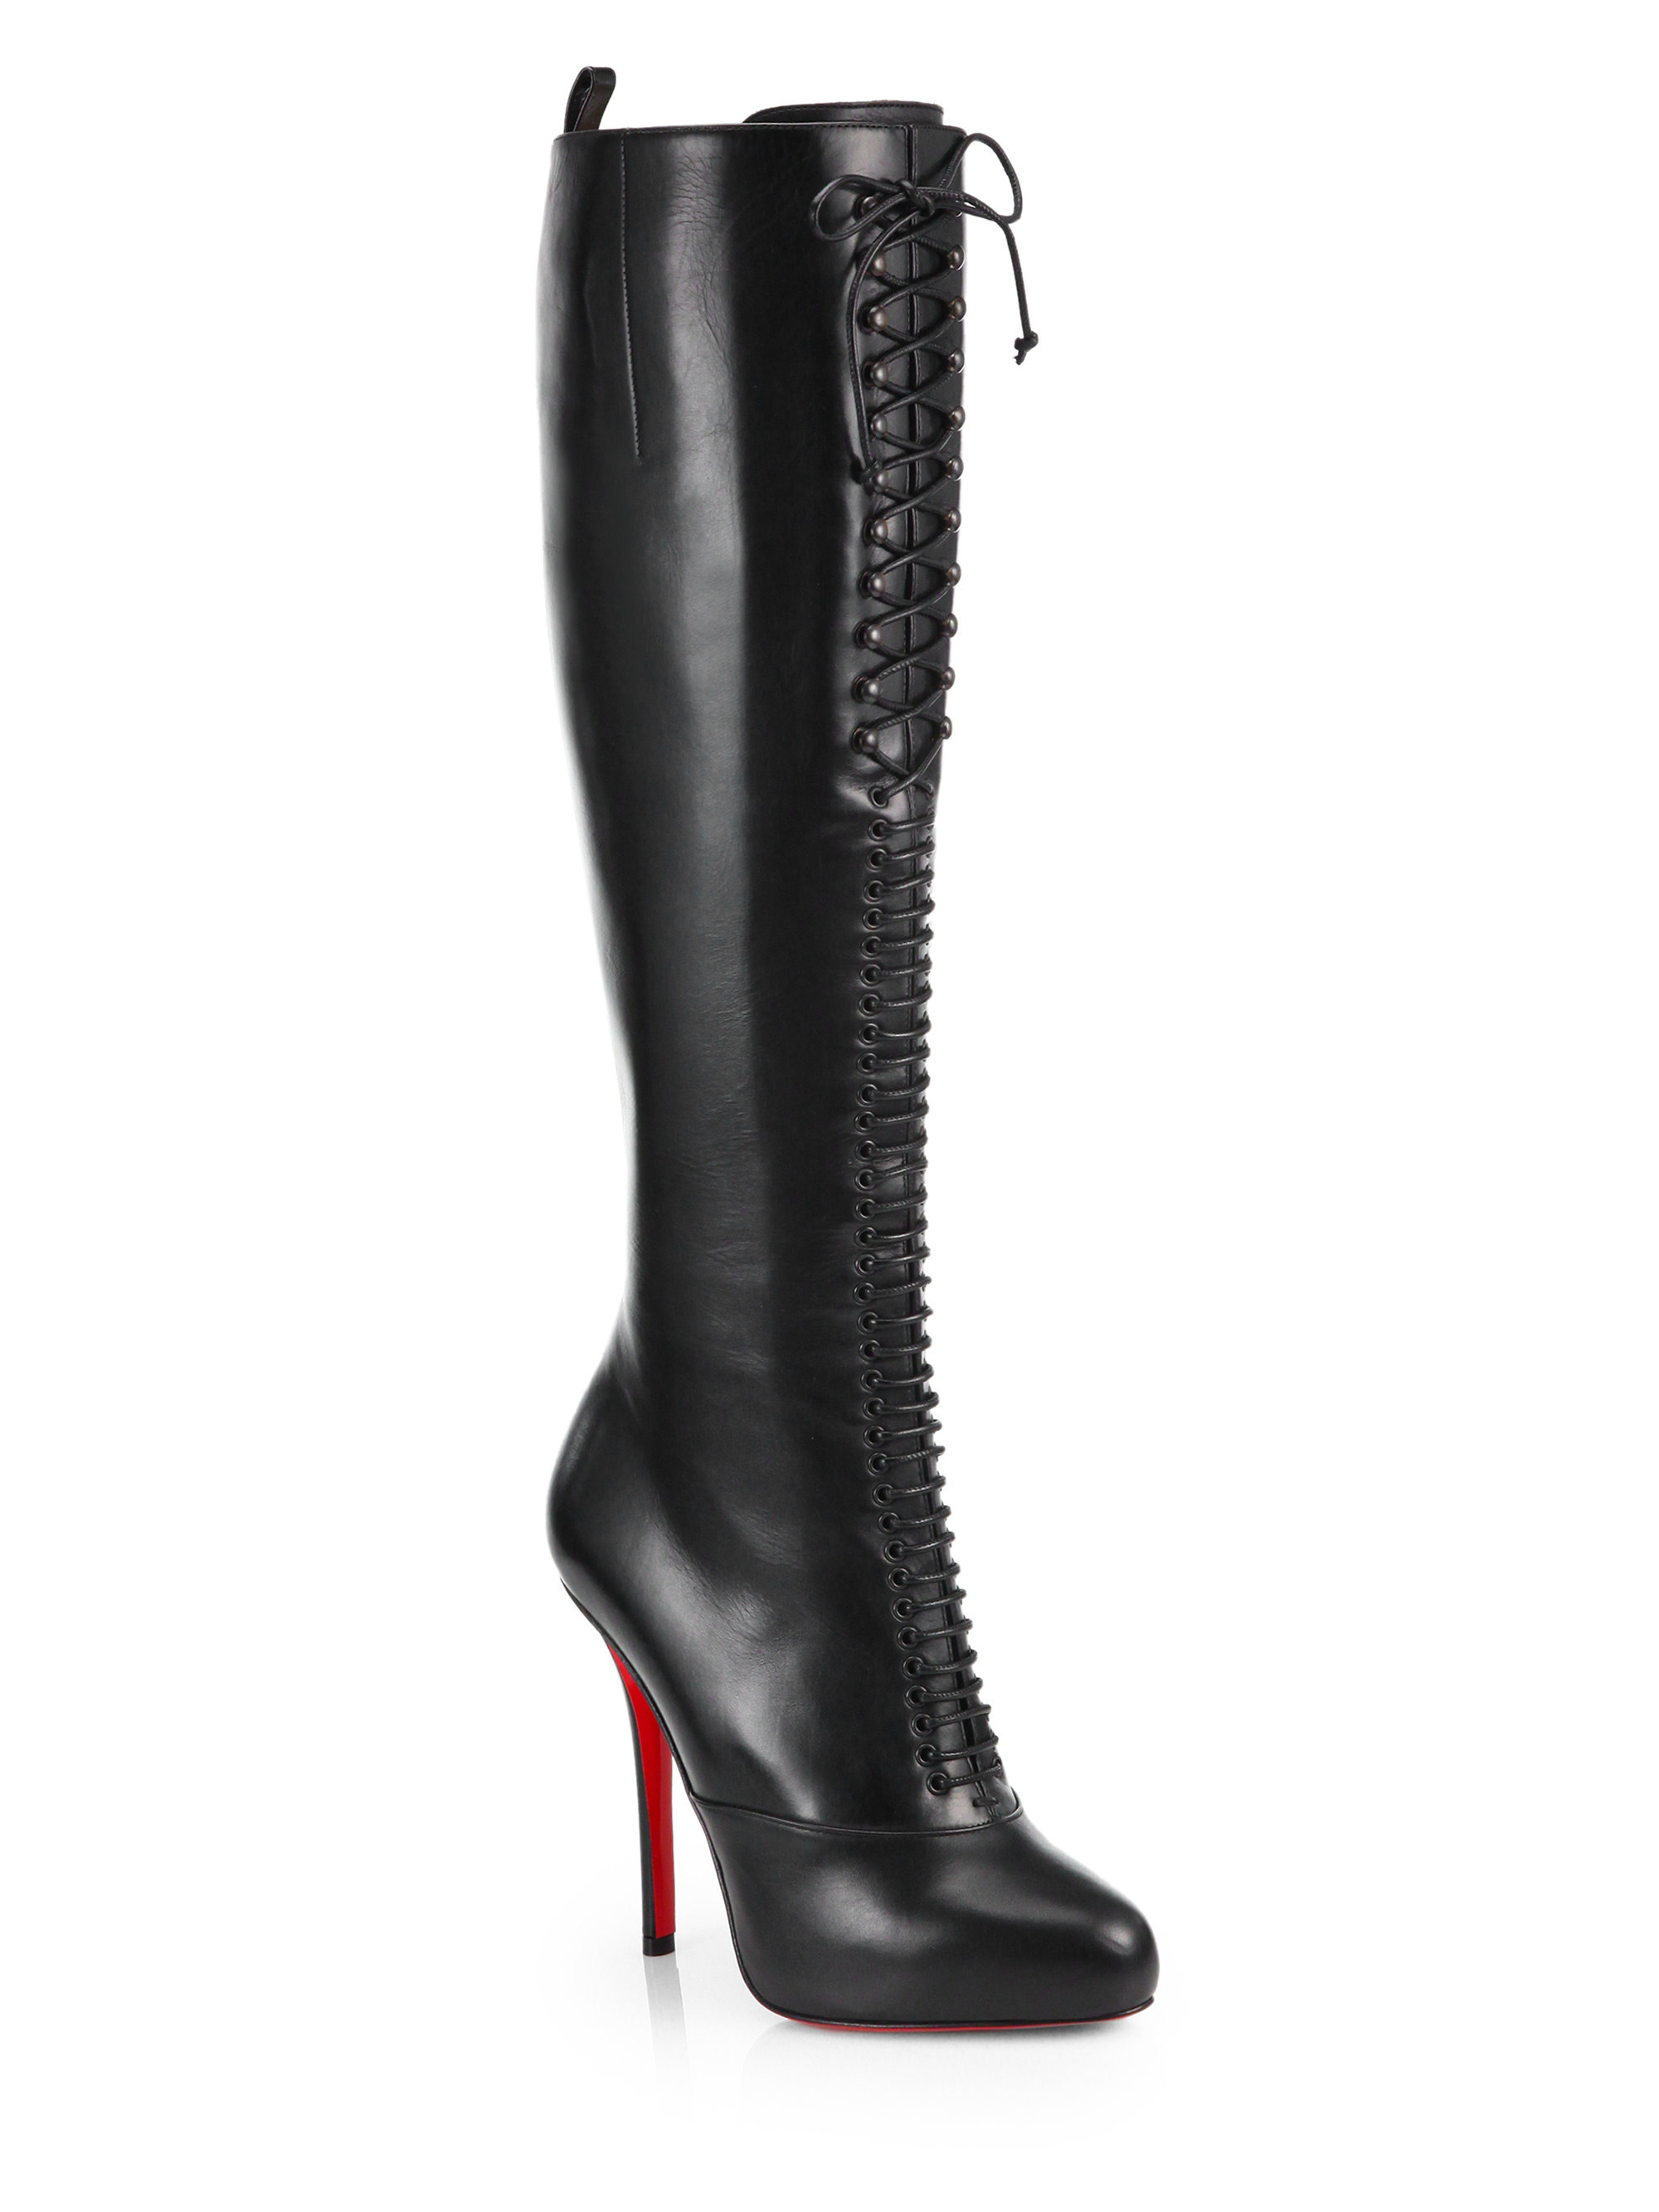 christian louboutin lamadone leather kneehigh boots in